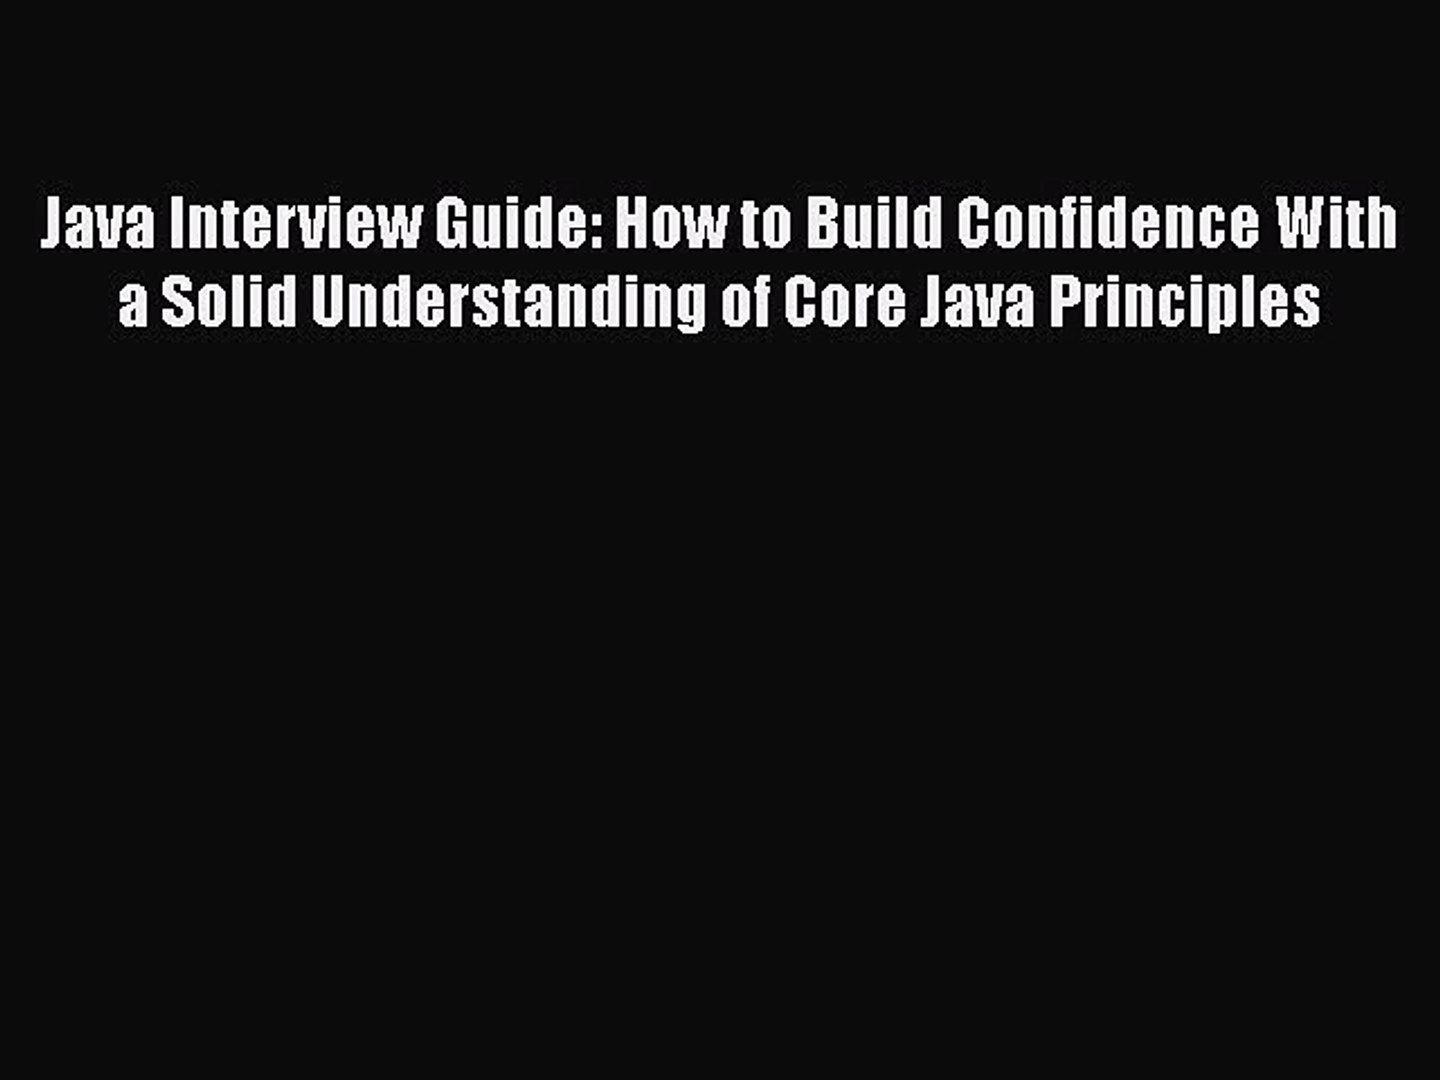 Read Java Interview Guide: How to Build Confidence With a Solid Understanding of Core Java